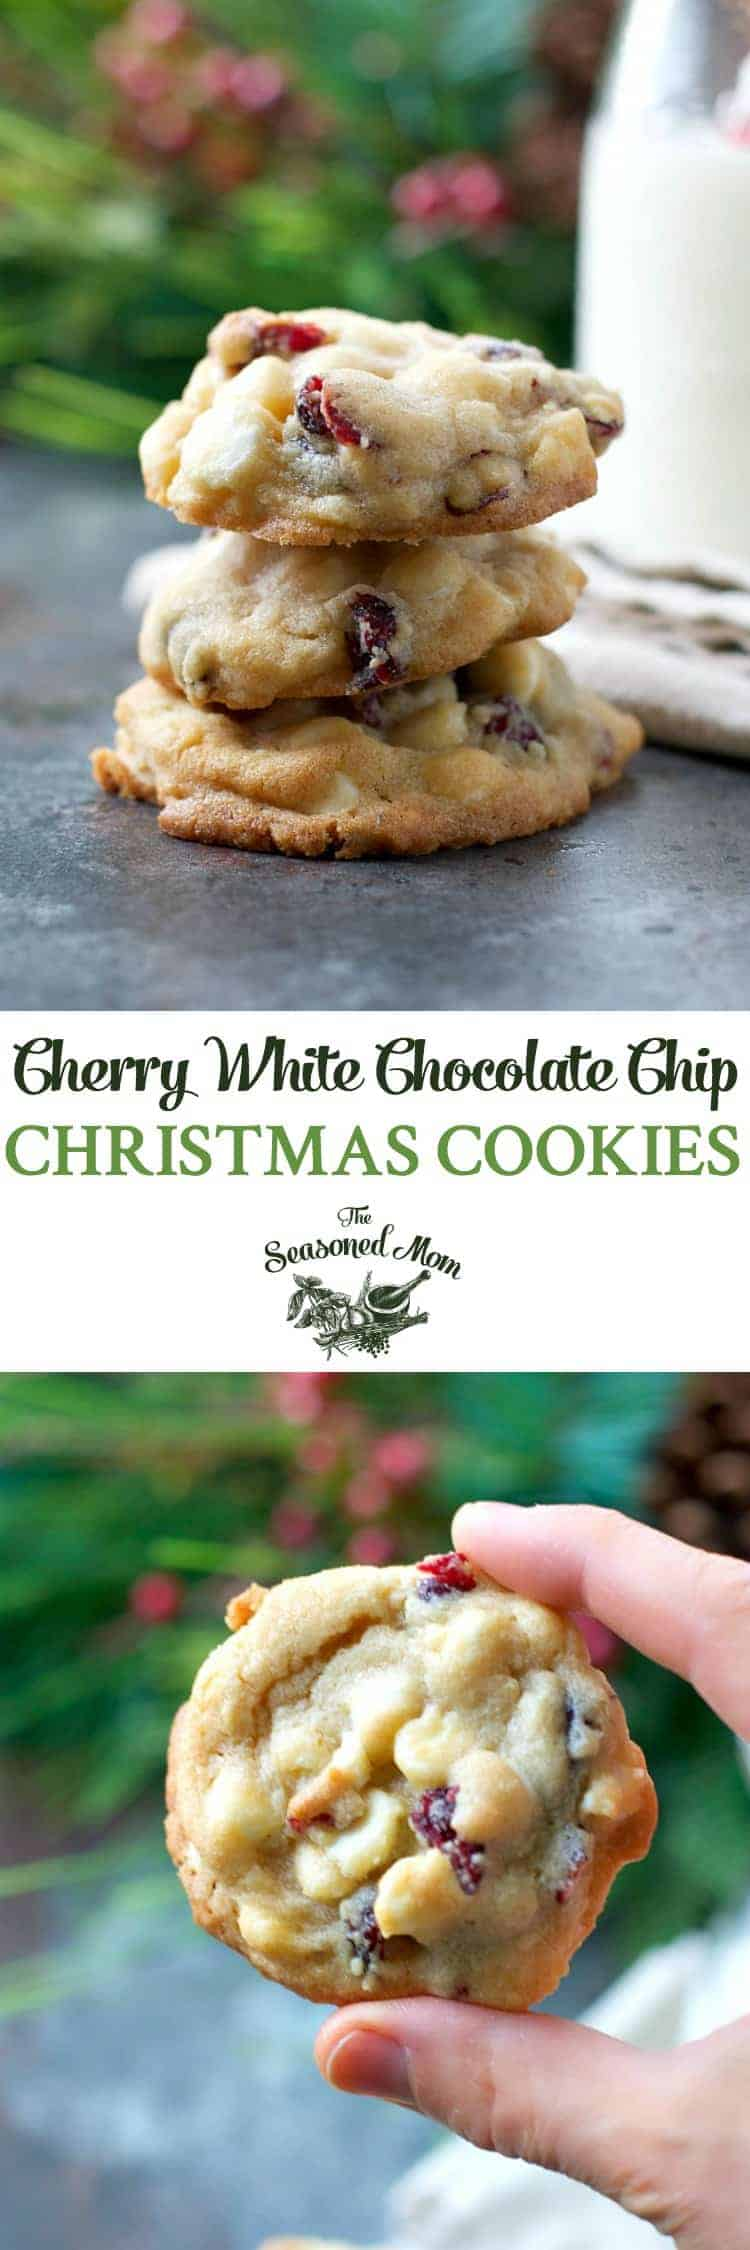 Cherry White Chocolate Chip Cookies by the Seasoned Mom   The Best Ever Christmas Cookies   Dozens and dozens of delicious Christmas Cookie Recipe ideas!